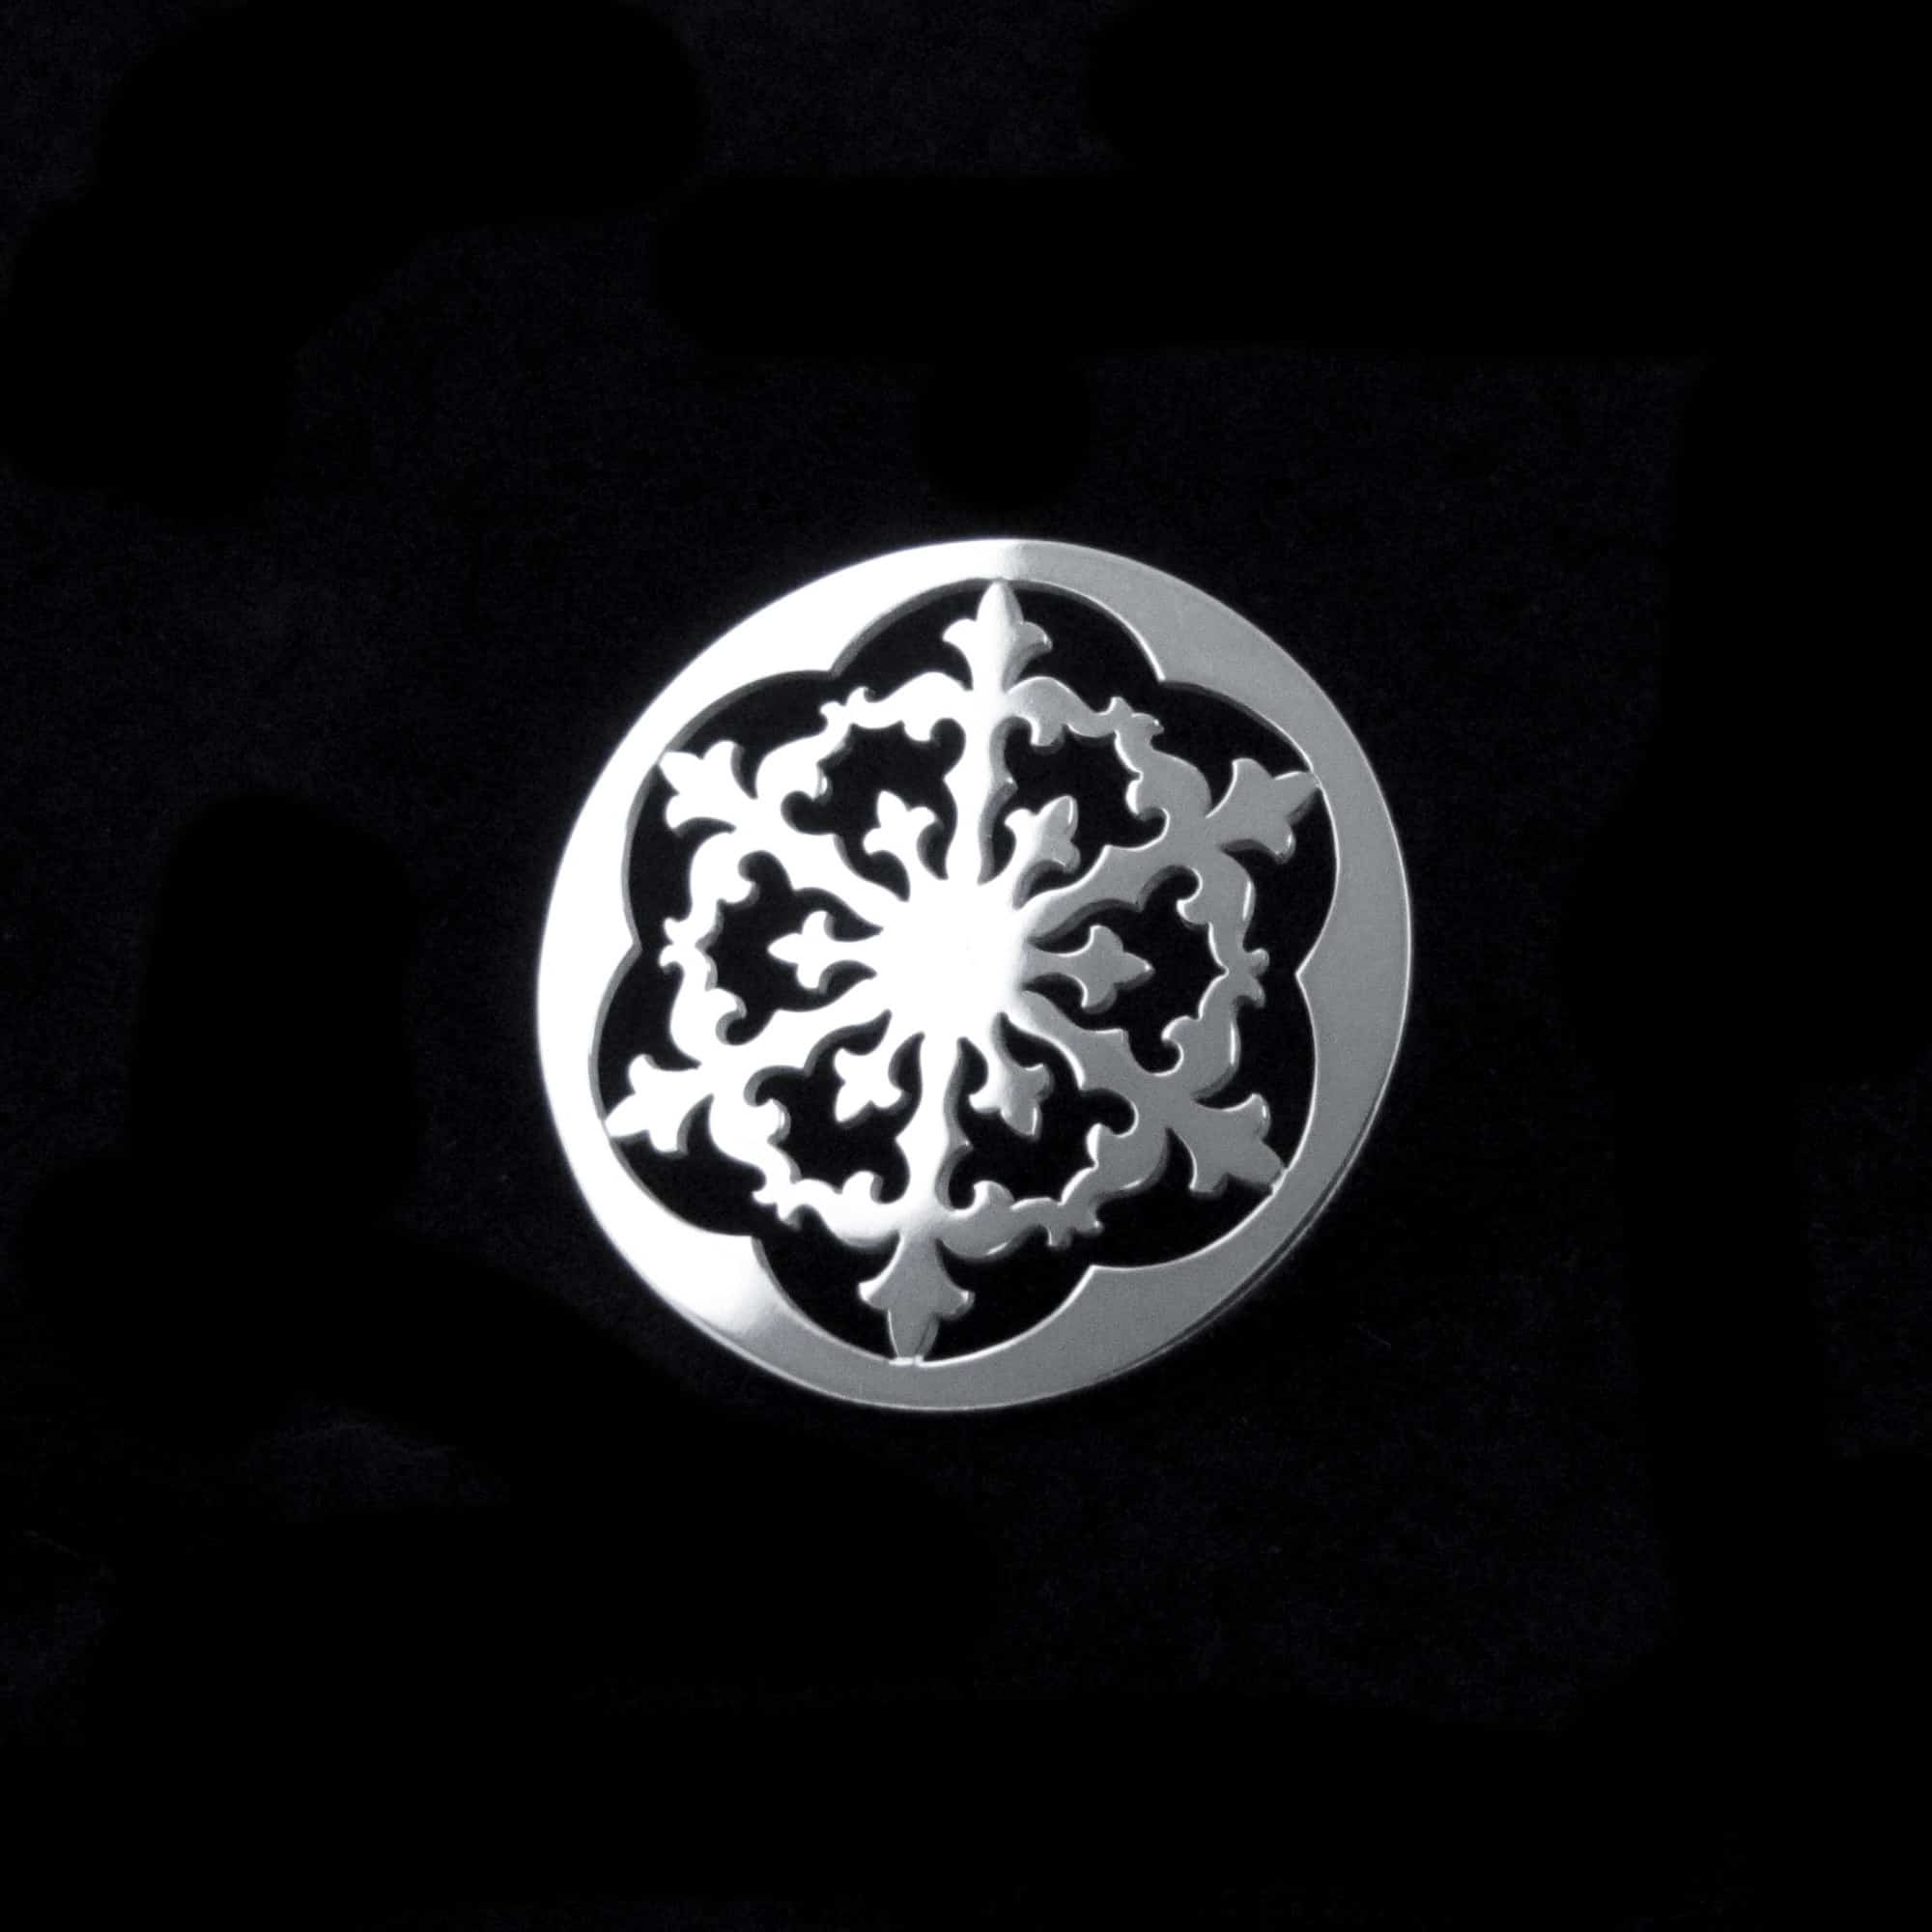 Winter's Ornament – Silver Snowflake Pin By Skadi Jewellery Design